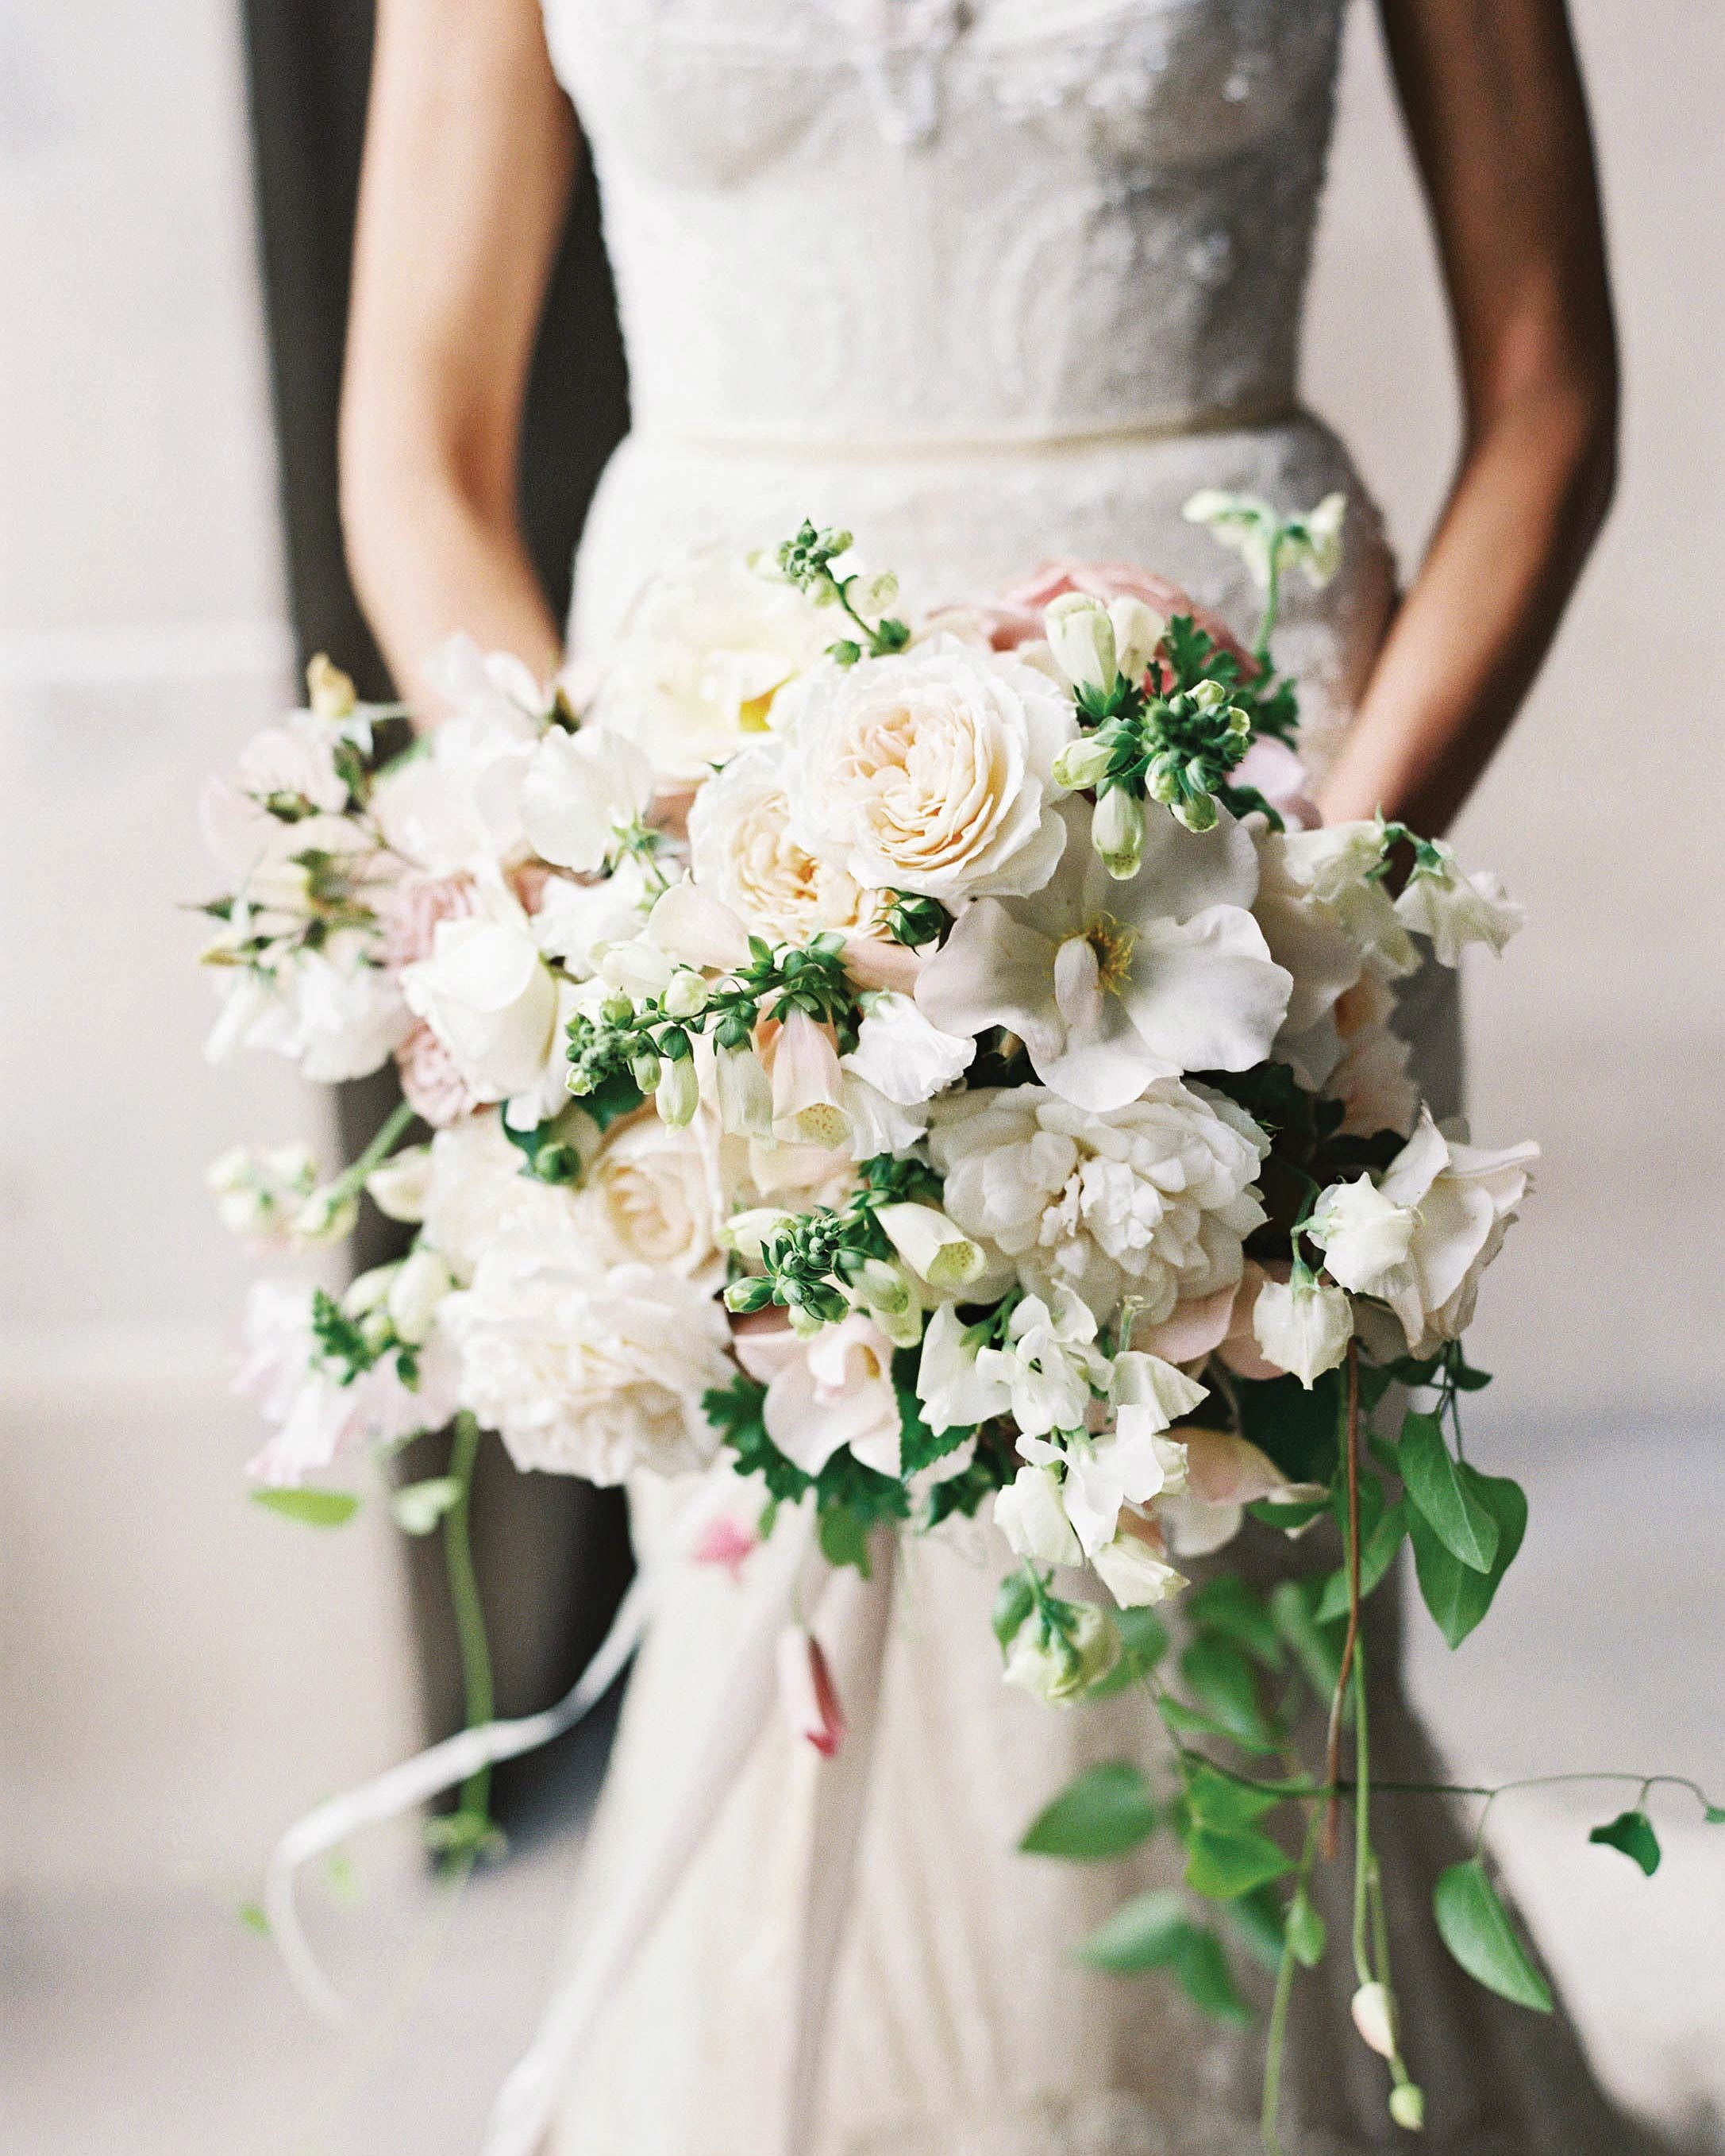 rebecca-david-wedding-new-york-bridal-bouquet-d112241.jpg